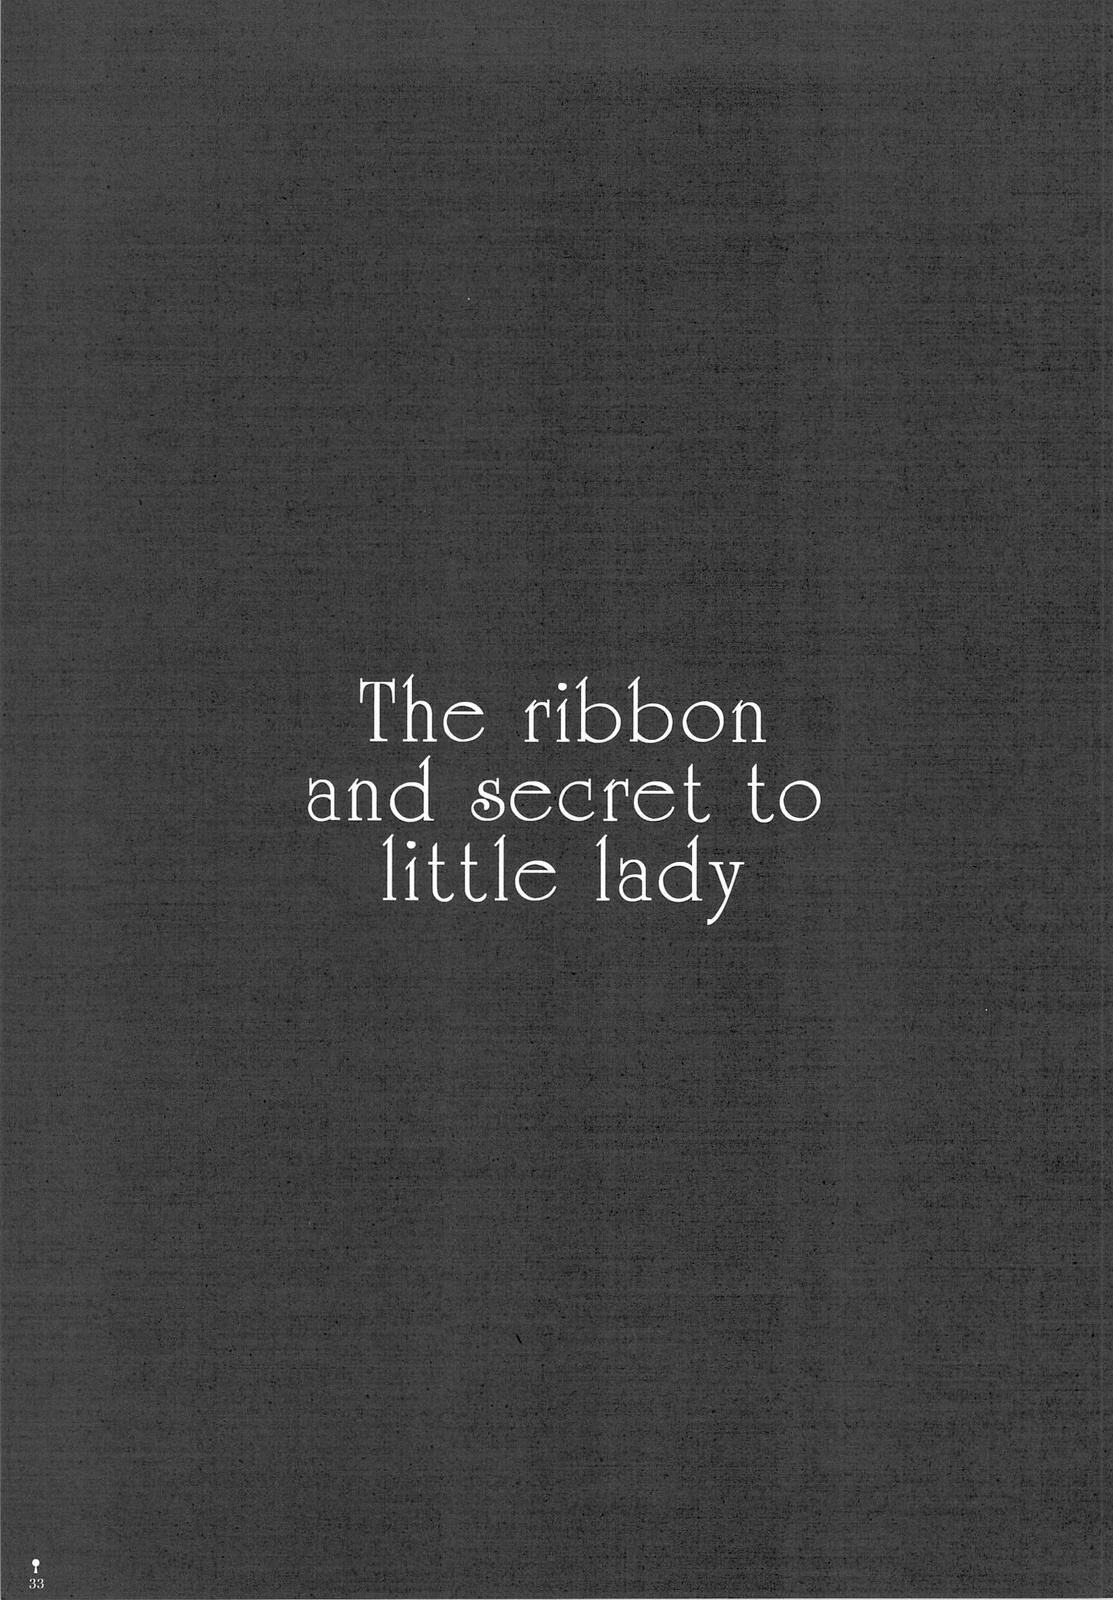 The ribbon and secret to little lady 34